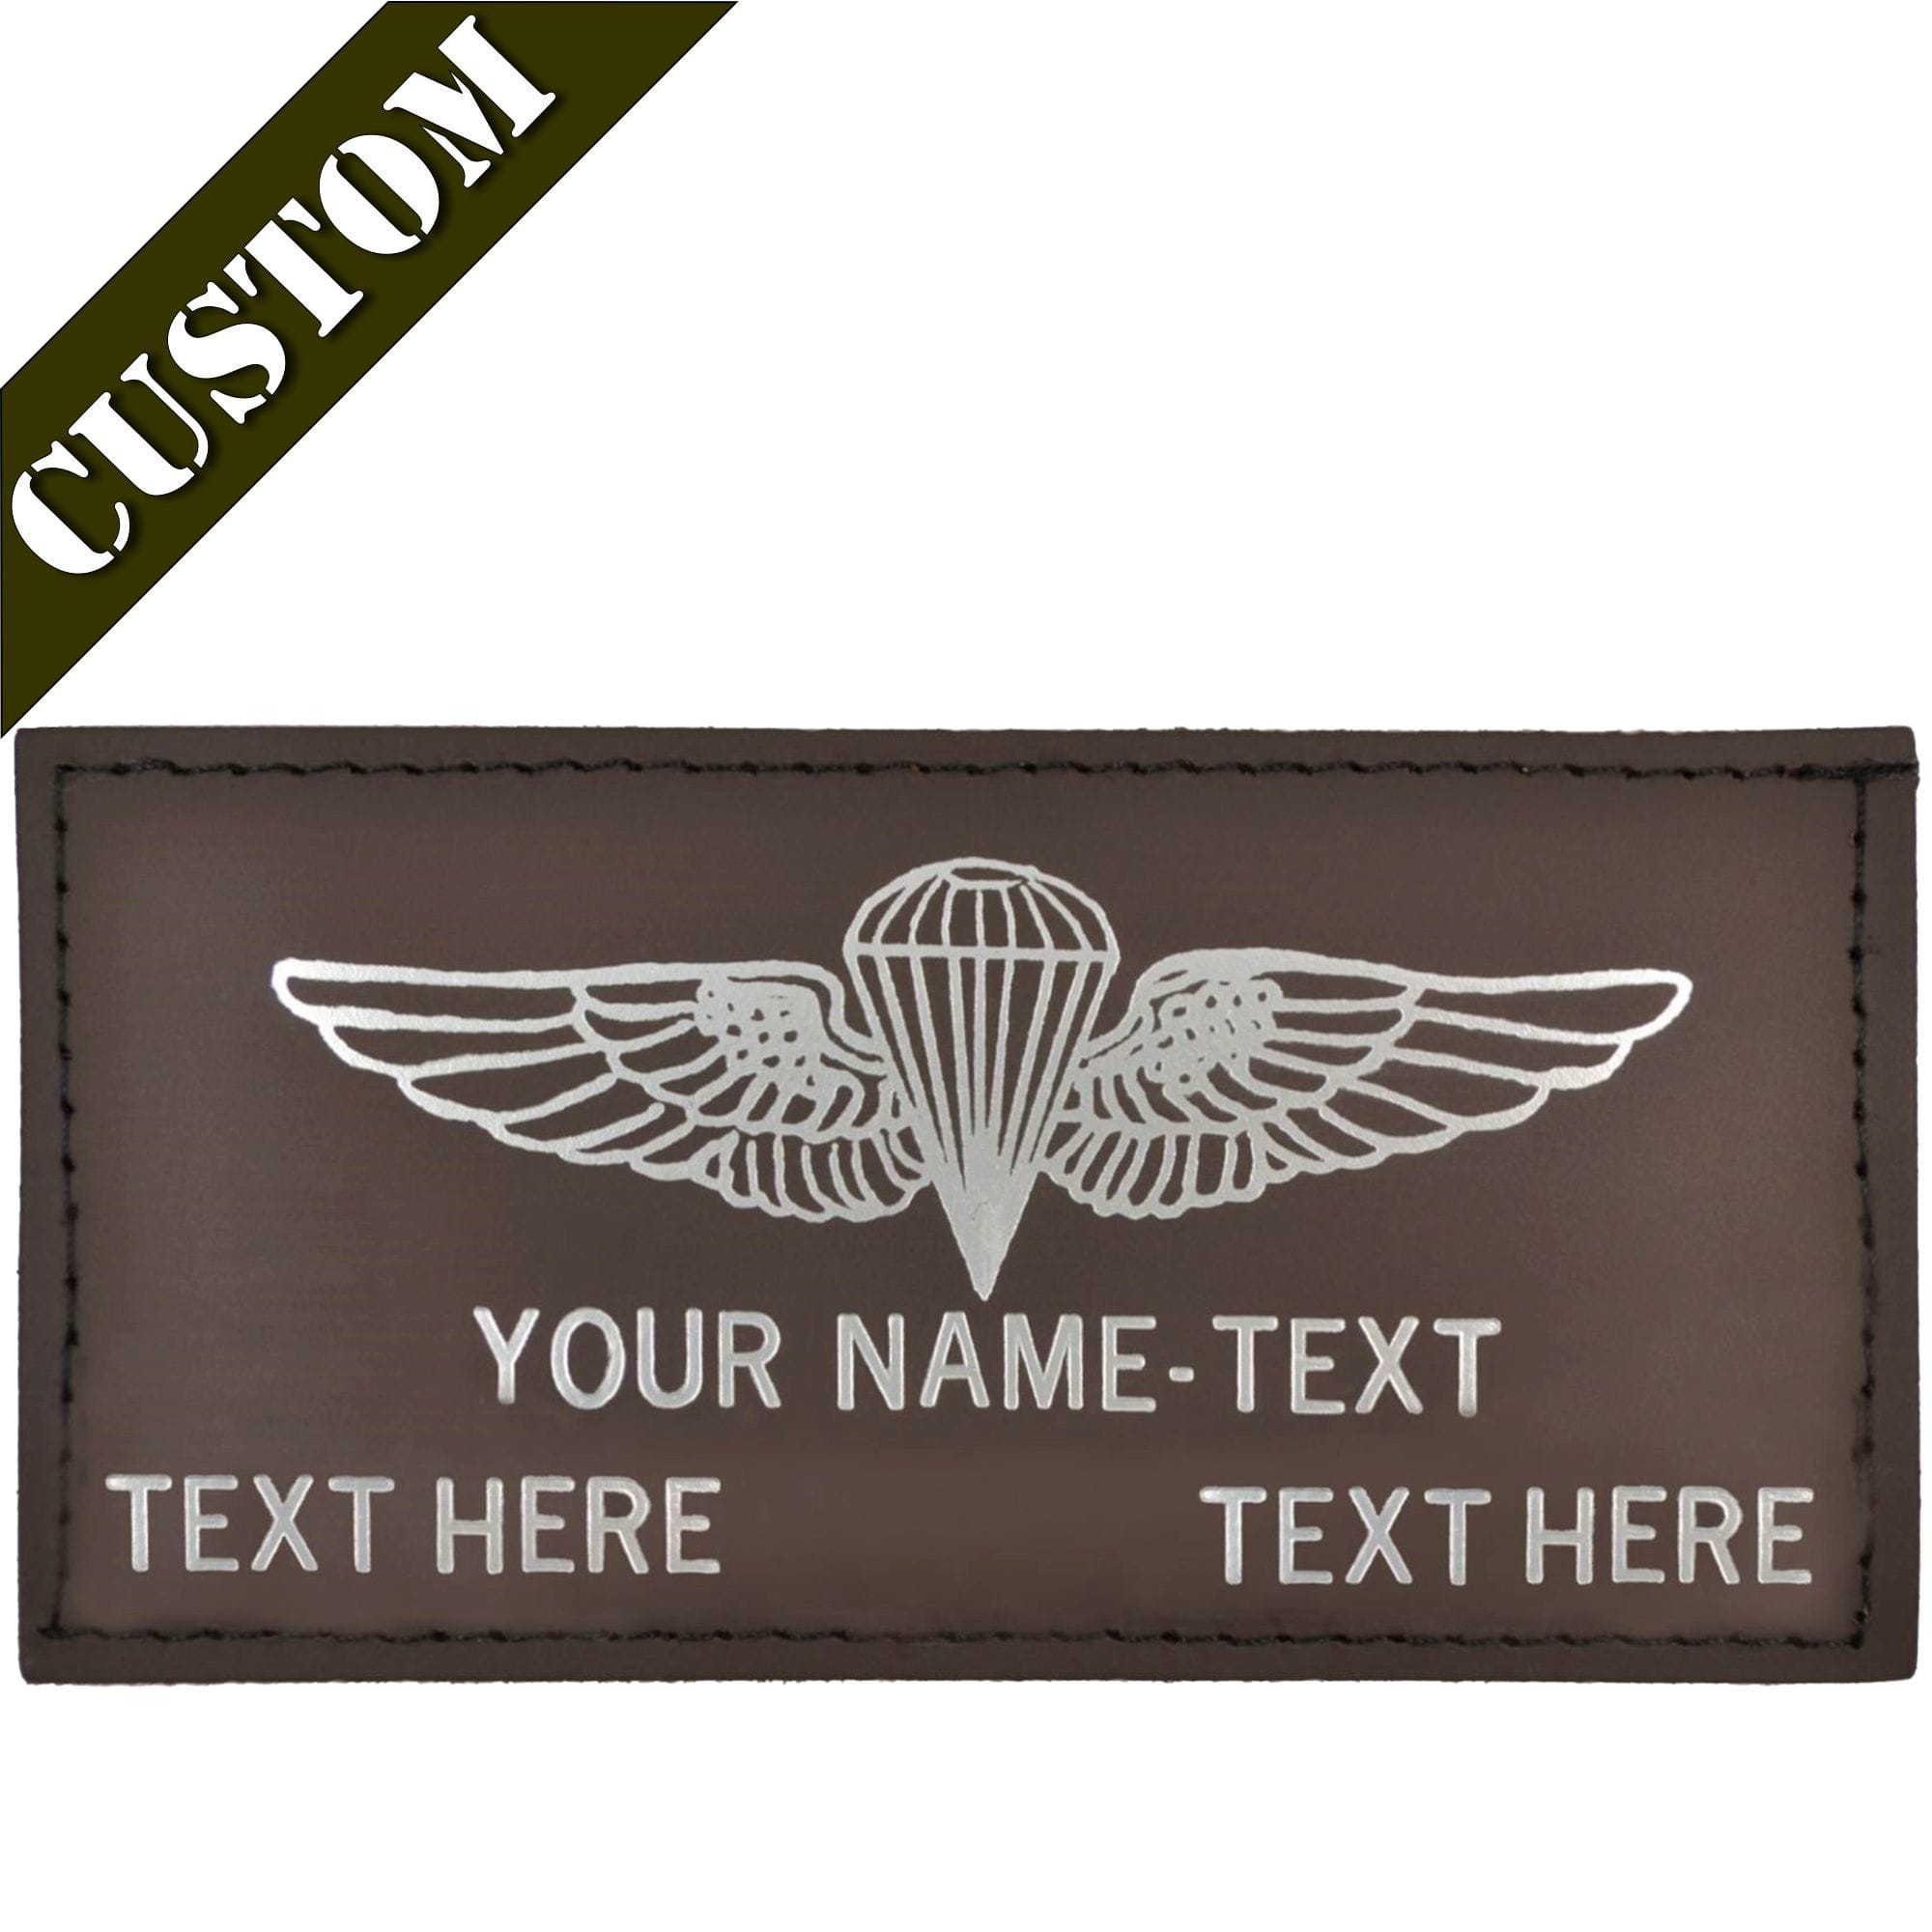 Custom Leather Embossed Flight Badge - 2x4 Leather Patch